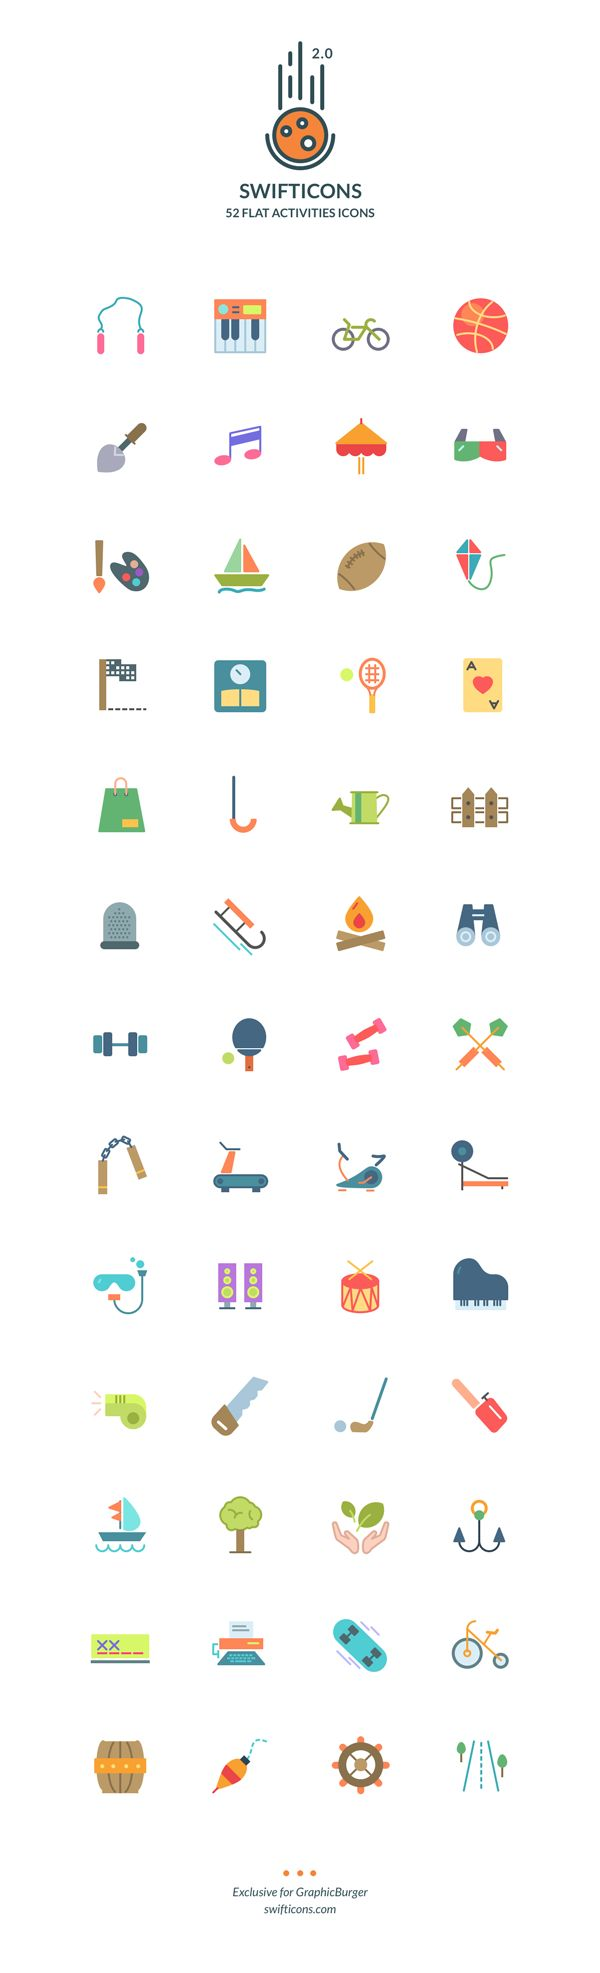 Friends! Have a fun day with this Set Of 52 Colorful Flat Icons – Swifticons. They're inspired by a wide range of fun activities and available in multiple formats. Feel FREE to download and use in your various projects with ease. Don't hesitate to check out and add to your library right now!